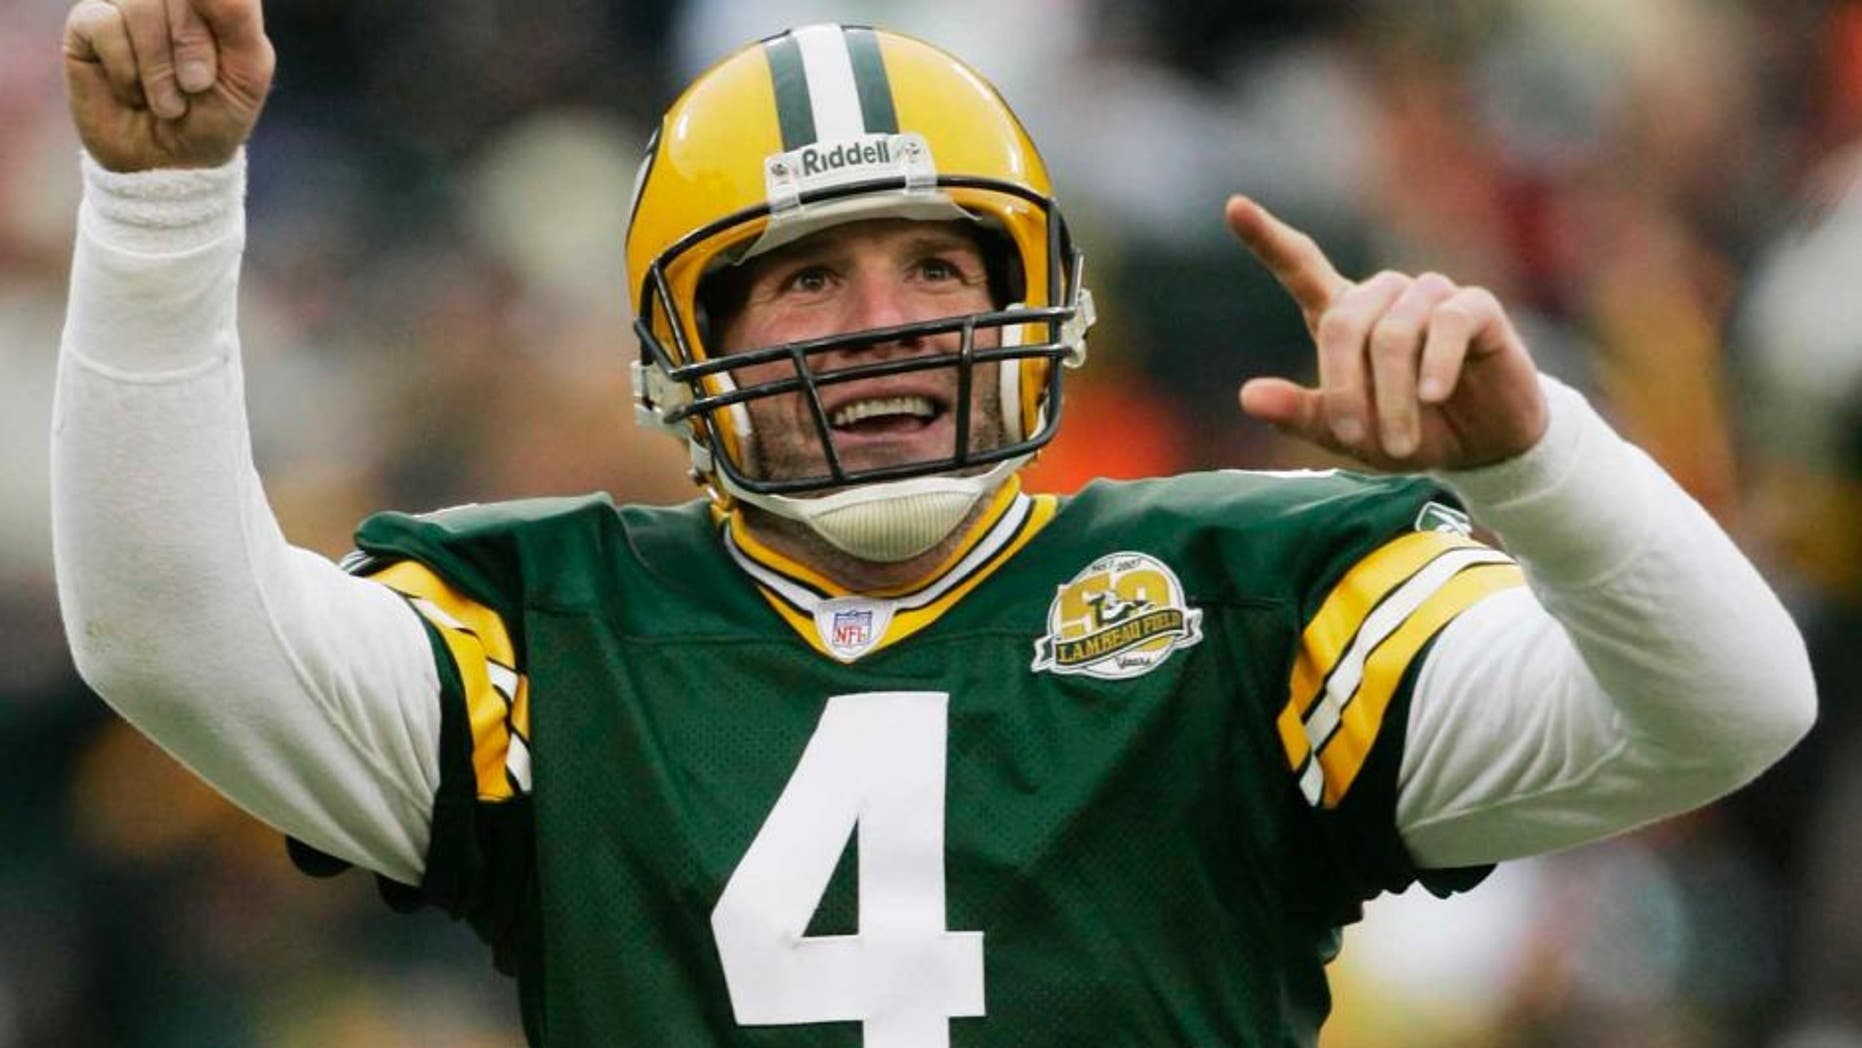 FILE - In this Dec. 9, 2007 file photo, Green Bay Packers quarterback Brett Favre reacts to a 46-yard touchdown pass to tight end Donald Lee during the second half of an NFL football game against the Oakland Raiders in Green Bay, Wis. Favre will be inducted into the team's Hall of Fame and have his jersey retired next year. Favre writes on his official website that it will be an honor to have his name placed among others such Bart Starr, Curly Lambeau, Ray Nitschke and Vince Lombardi, to name a few.